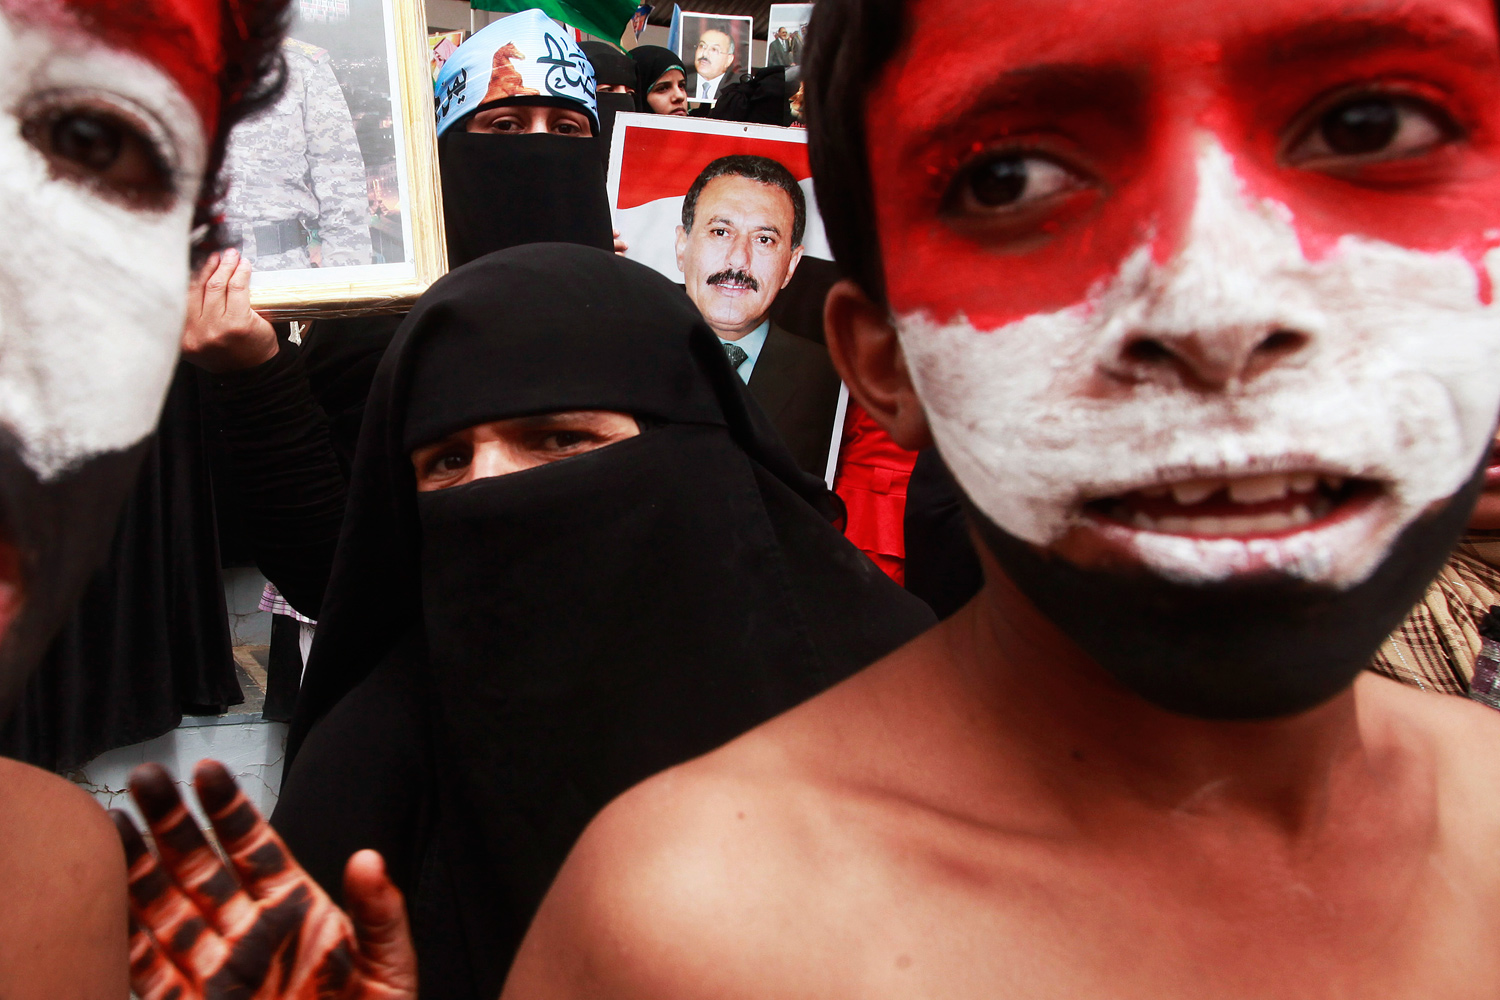 July 22, 2011. Supporters of Yemen's President Ali Abdullah Saleh attend a rally after painting their faces with the Yemeni flag colors following Friday prayers in Sana'a.